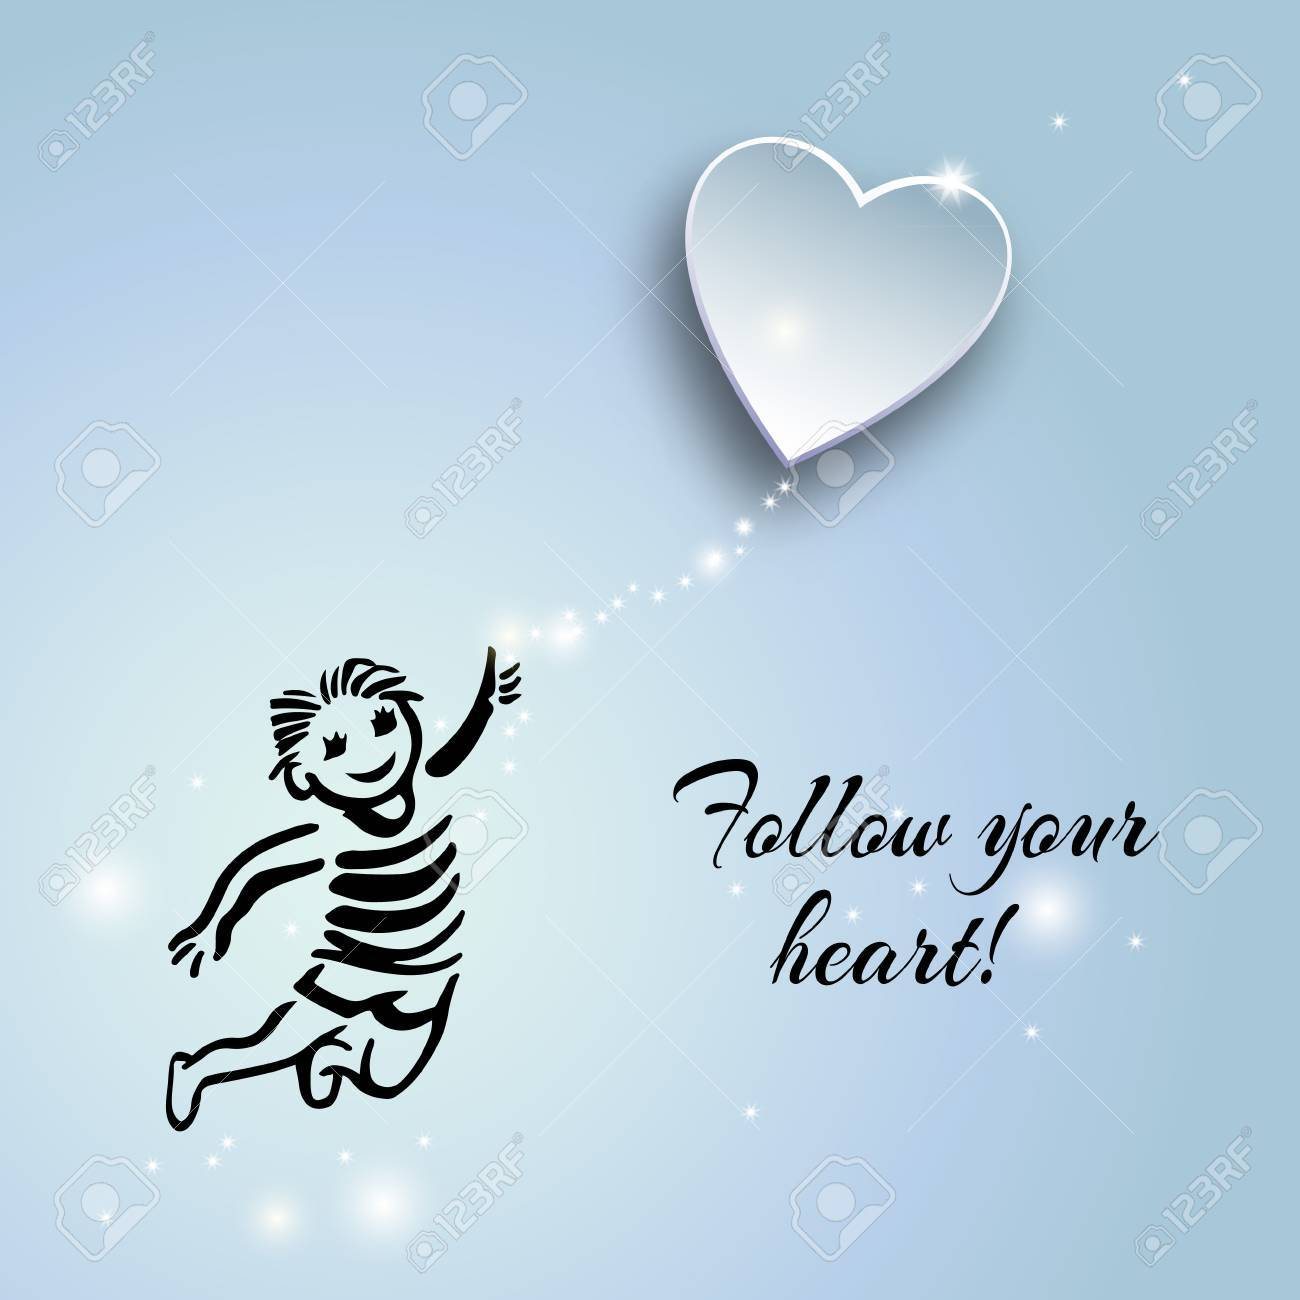 Inspirational Quote About Life And Love.Follow Your Heart!Hand ...